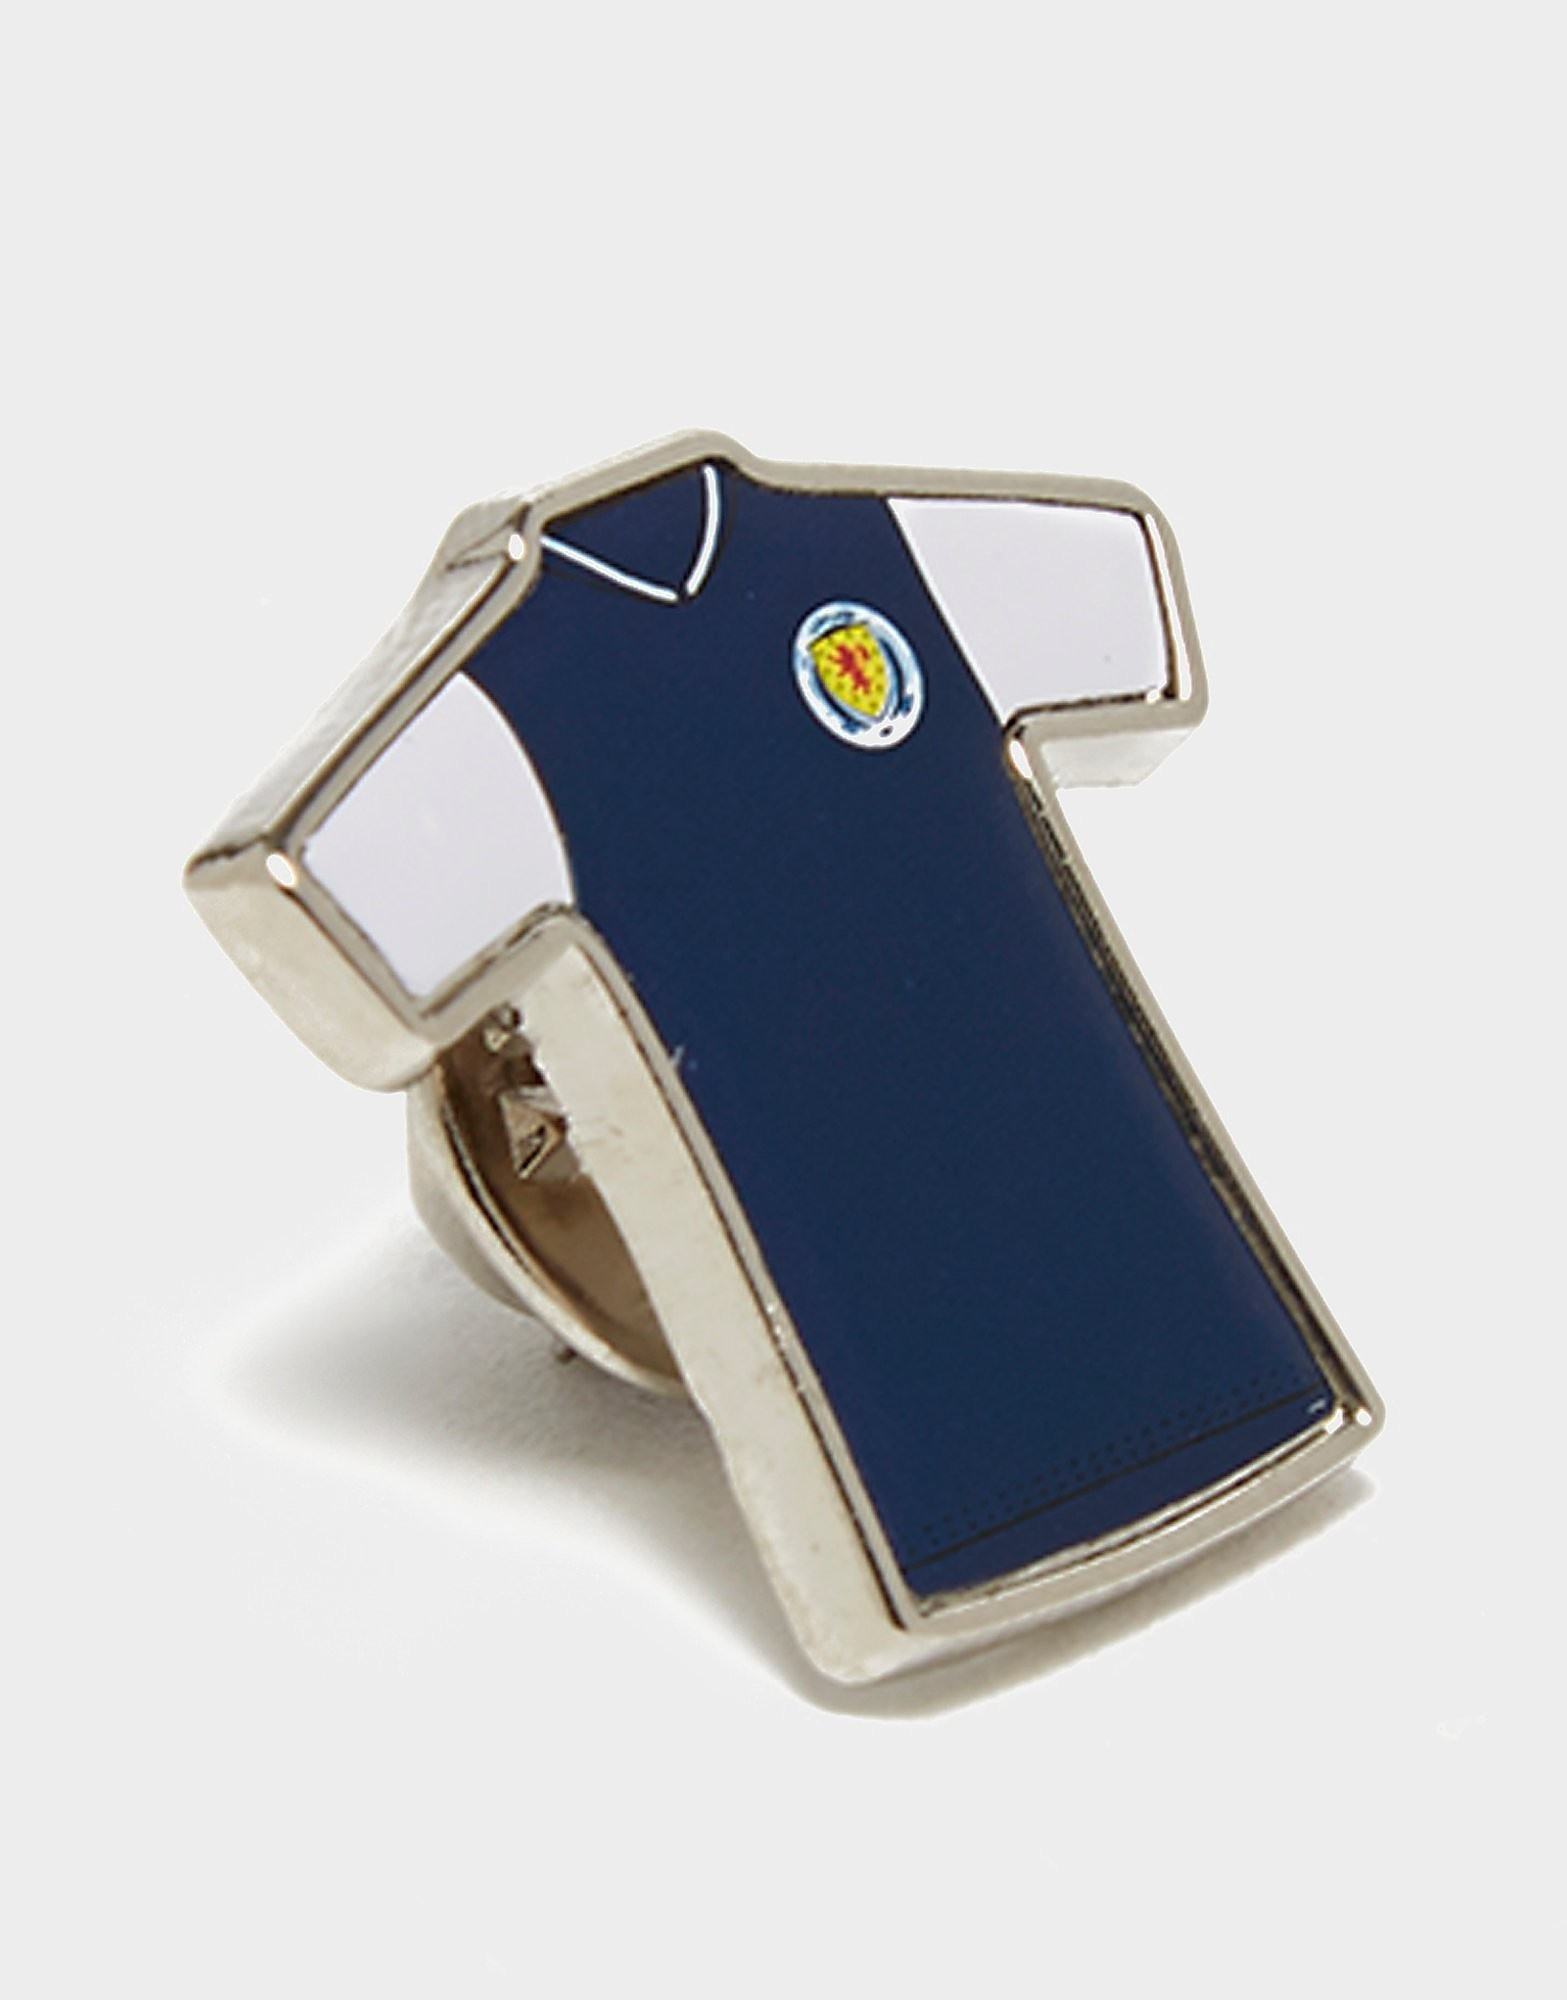 Official Team Pin de la camiseta de la 1ª equipación del Scotland FA